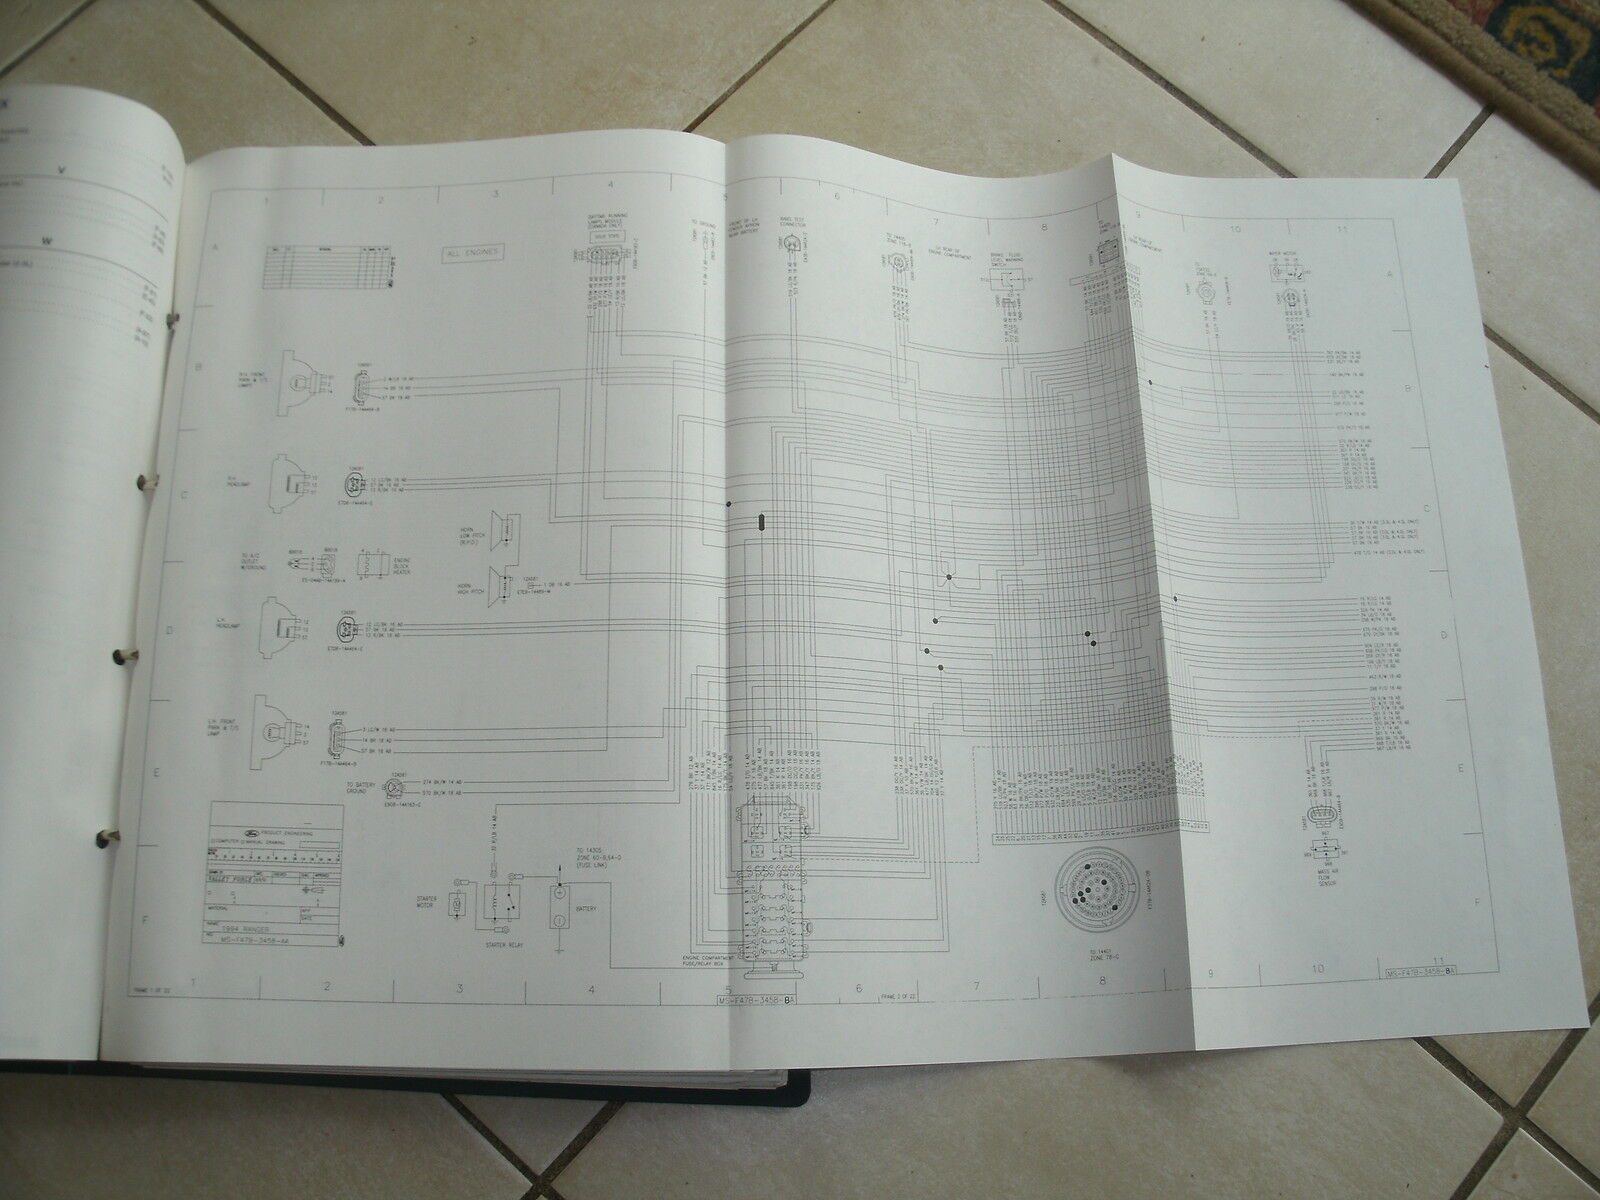 1996 Ford F700 F B800 Ft900 Cab Oem 17 X 27 Foldout Binder Wiring 1987 Diagram 1 Of 2only Available